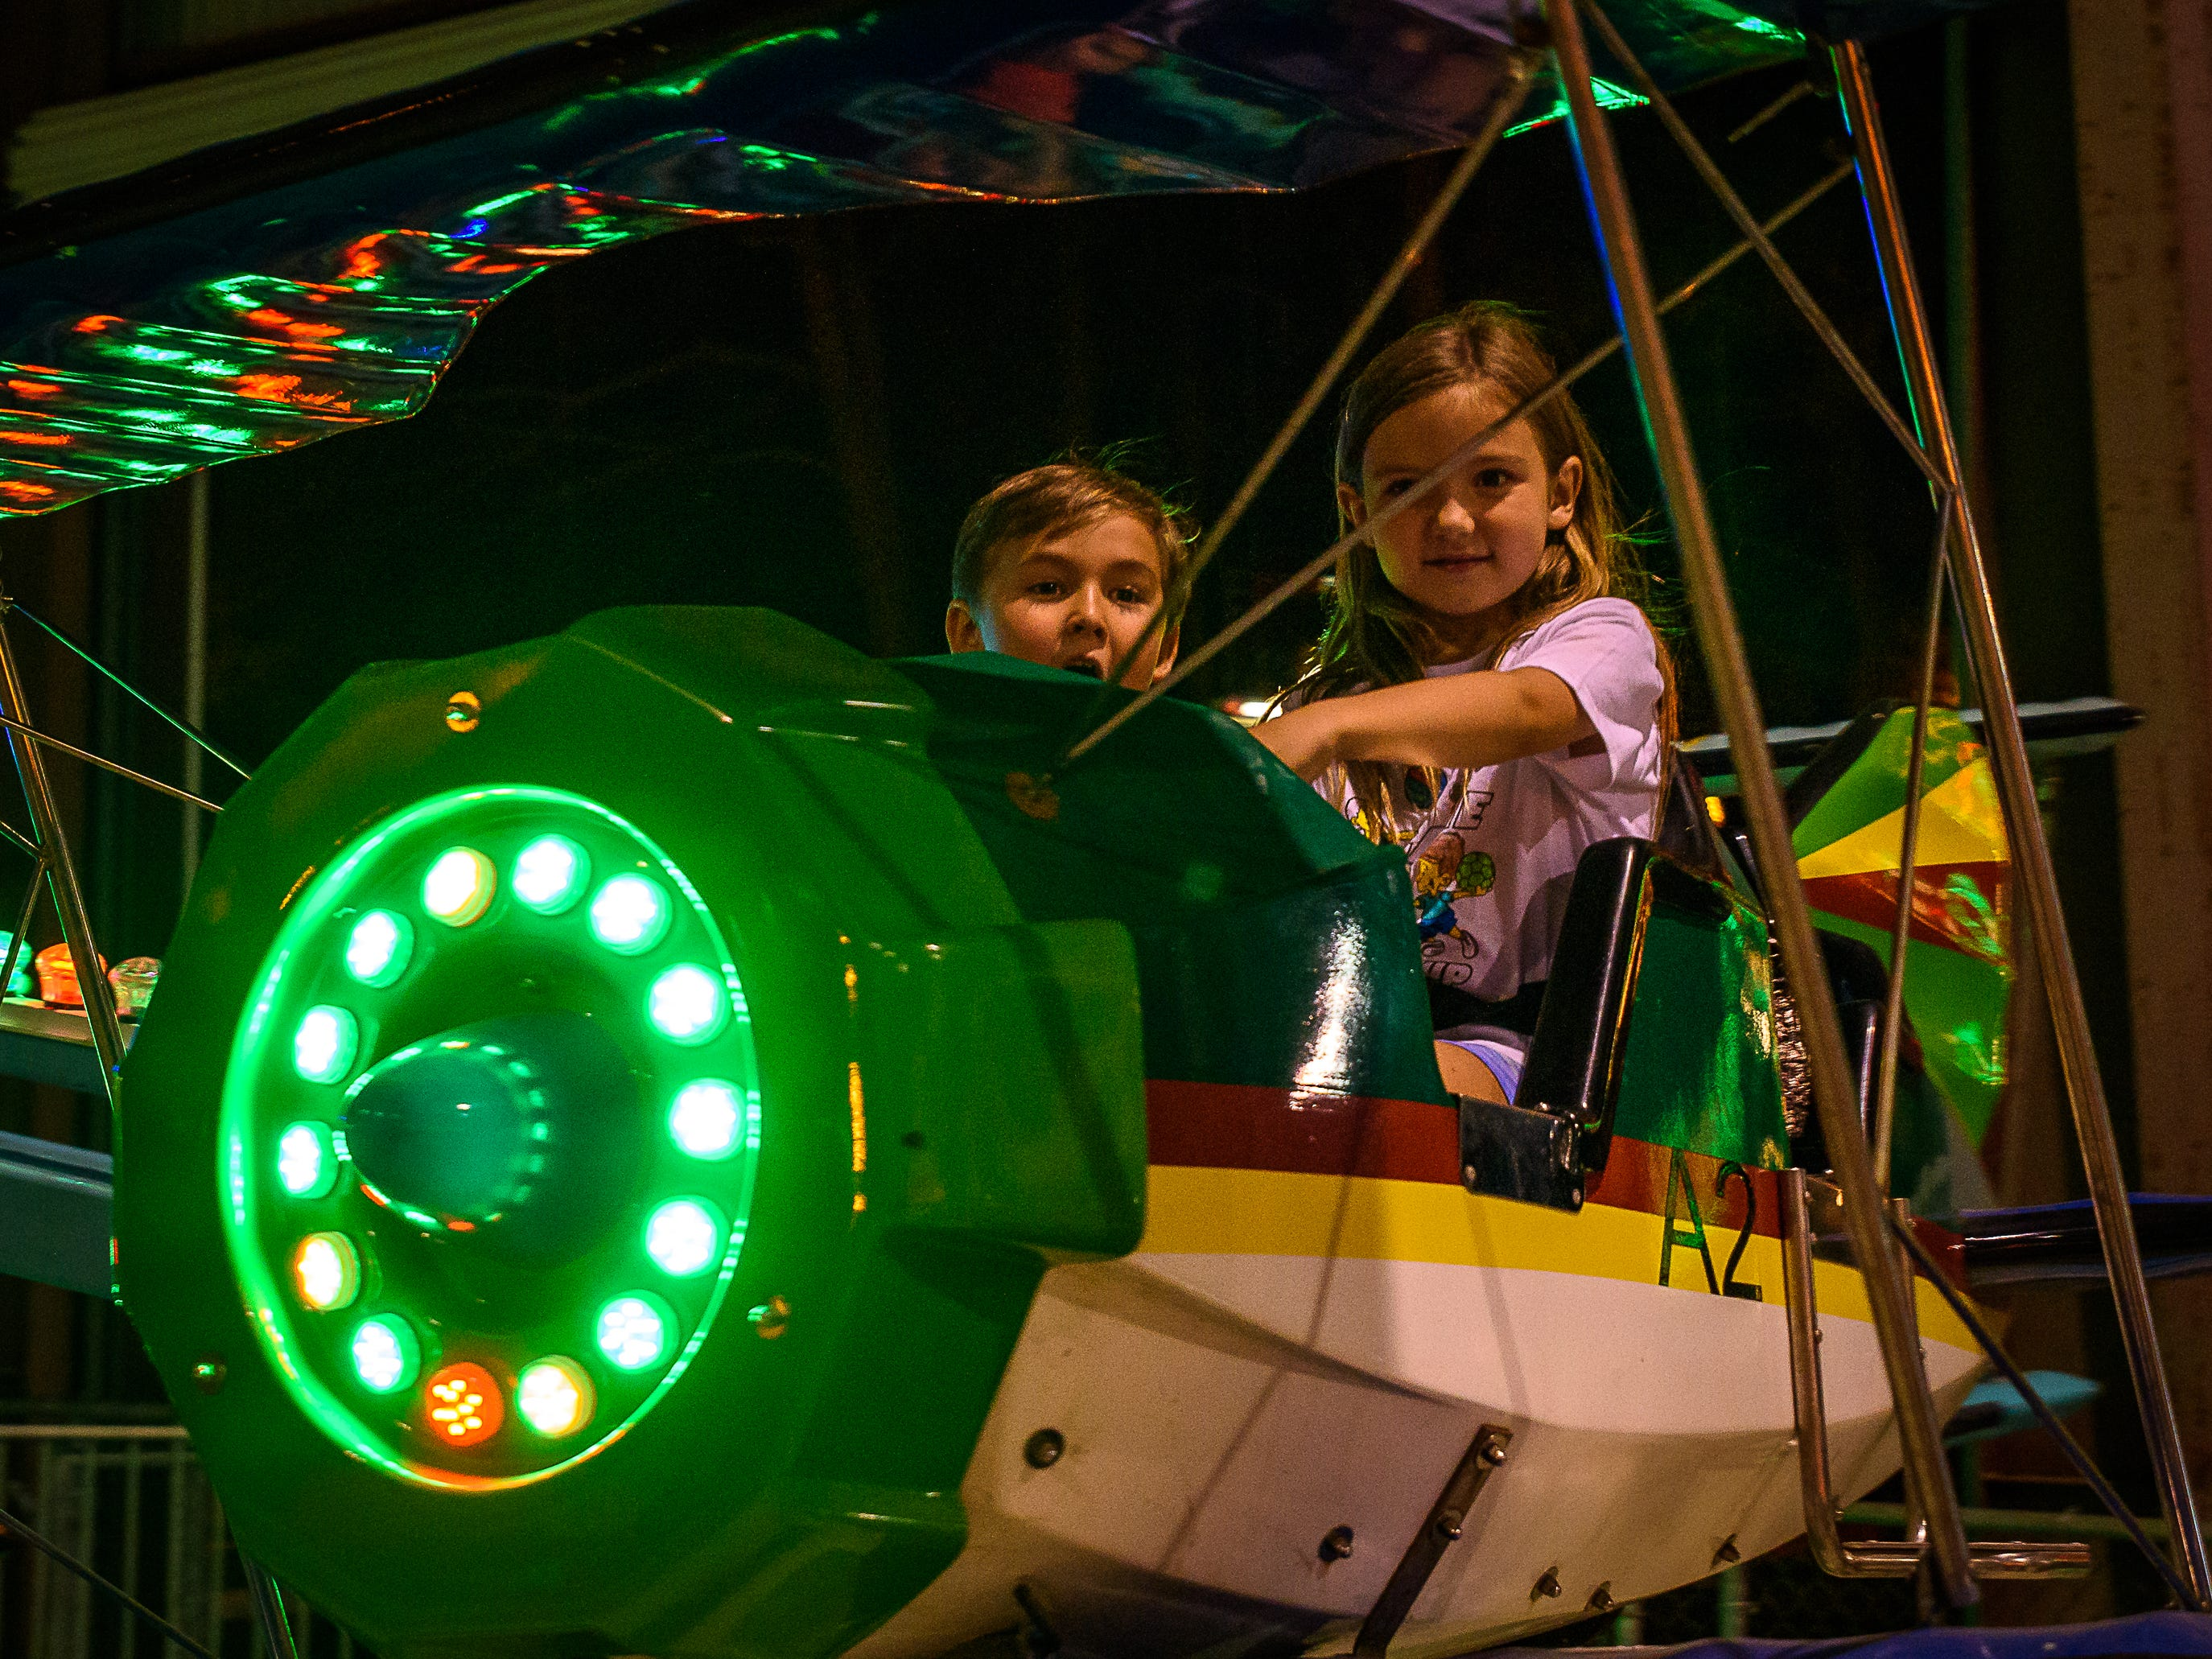 The Bi-Planes were popular with younger fair goers at the Chincoteague Fireman's Carnival.